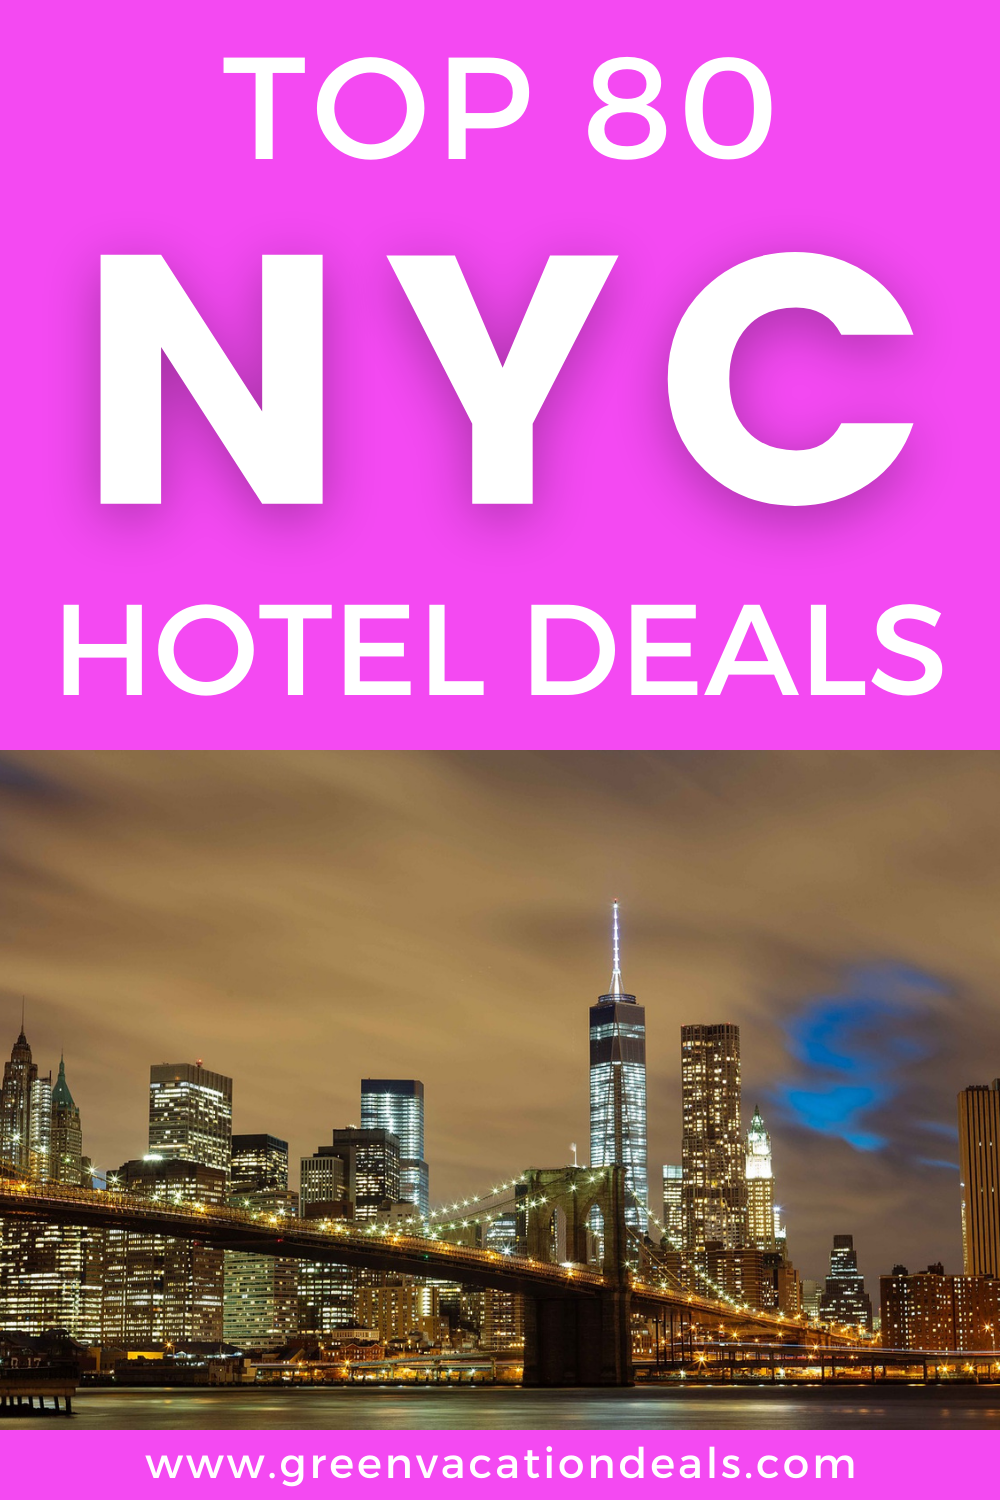 80 amazing New York City hotel deals. Up to 56% off NYC hotels in Central Park, Midtown, Times Square, East Village, Long Island, Park Avenue, Manhattan, Chelsea, Soho, West Side, etc. Great northeast USA travel hacks. #NewYorkCity #NYC #HotelDeals #TravelDeals #TravelSale #HotelSale #BigApple #Manhattan #UStravel #USAtravel #NewYork #NY #CentralPark #Midtown #TimesSquare #budgettravel #budgettrip